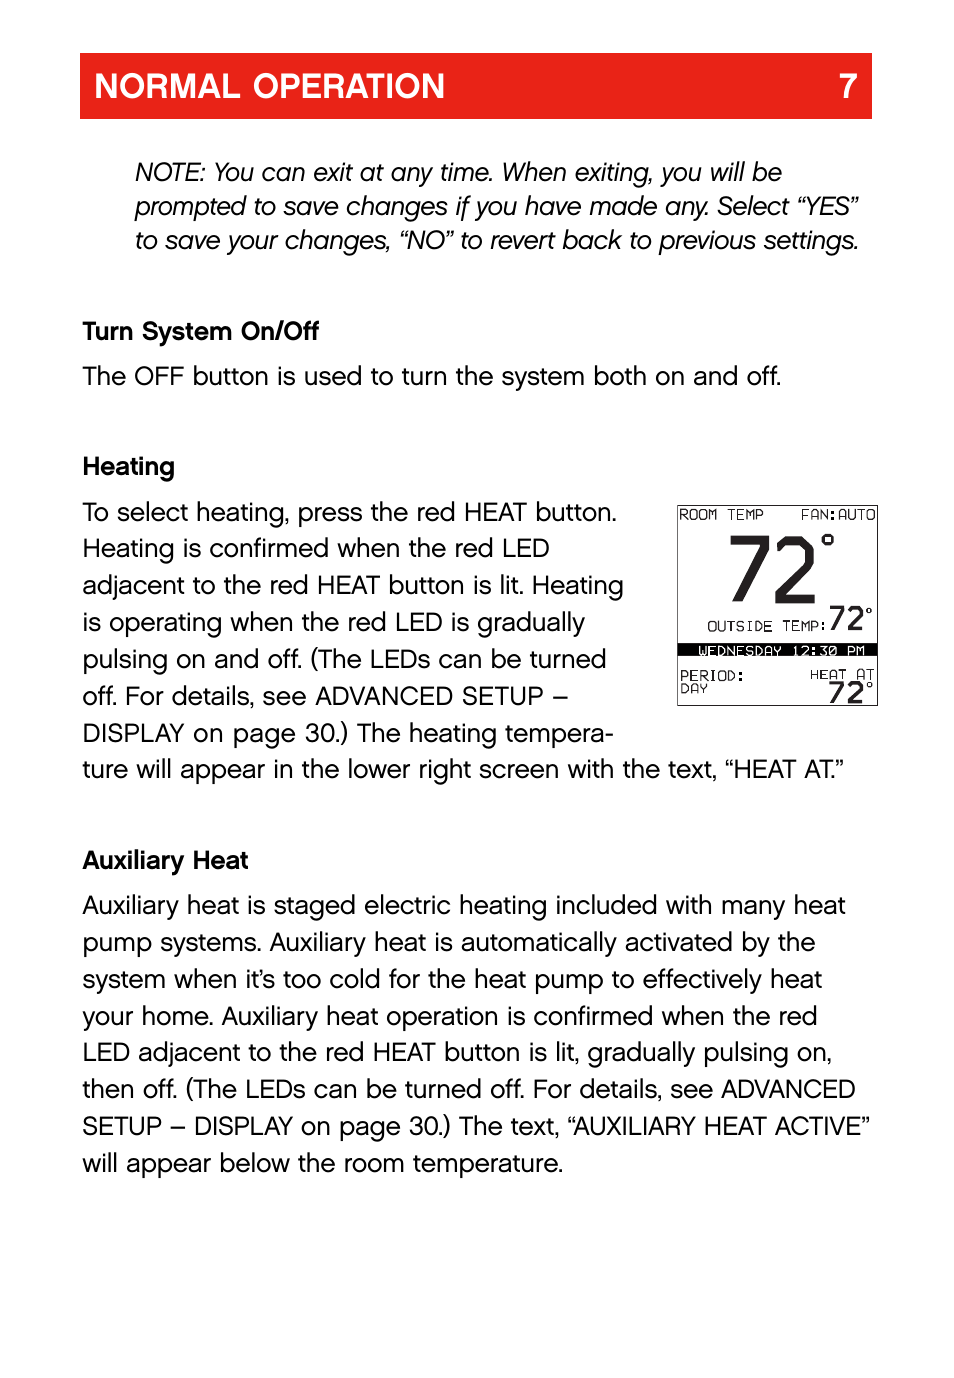 Normal operation 7 bryant evolution thermostat user manual normal operation 7 bryant evolution thermostat user manual page 11 44 sciox Images